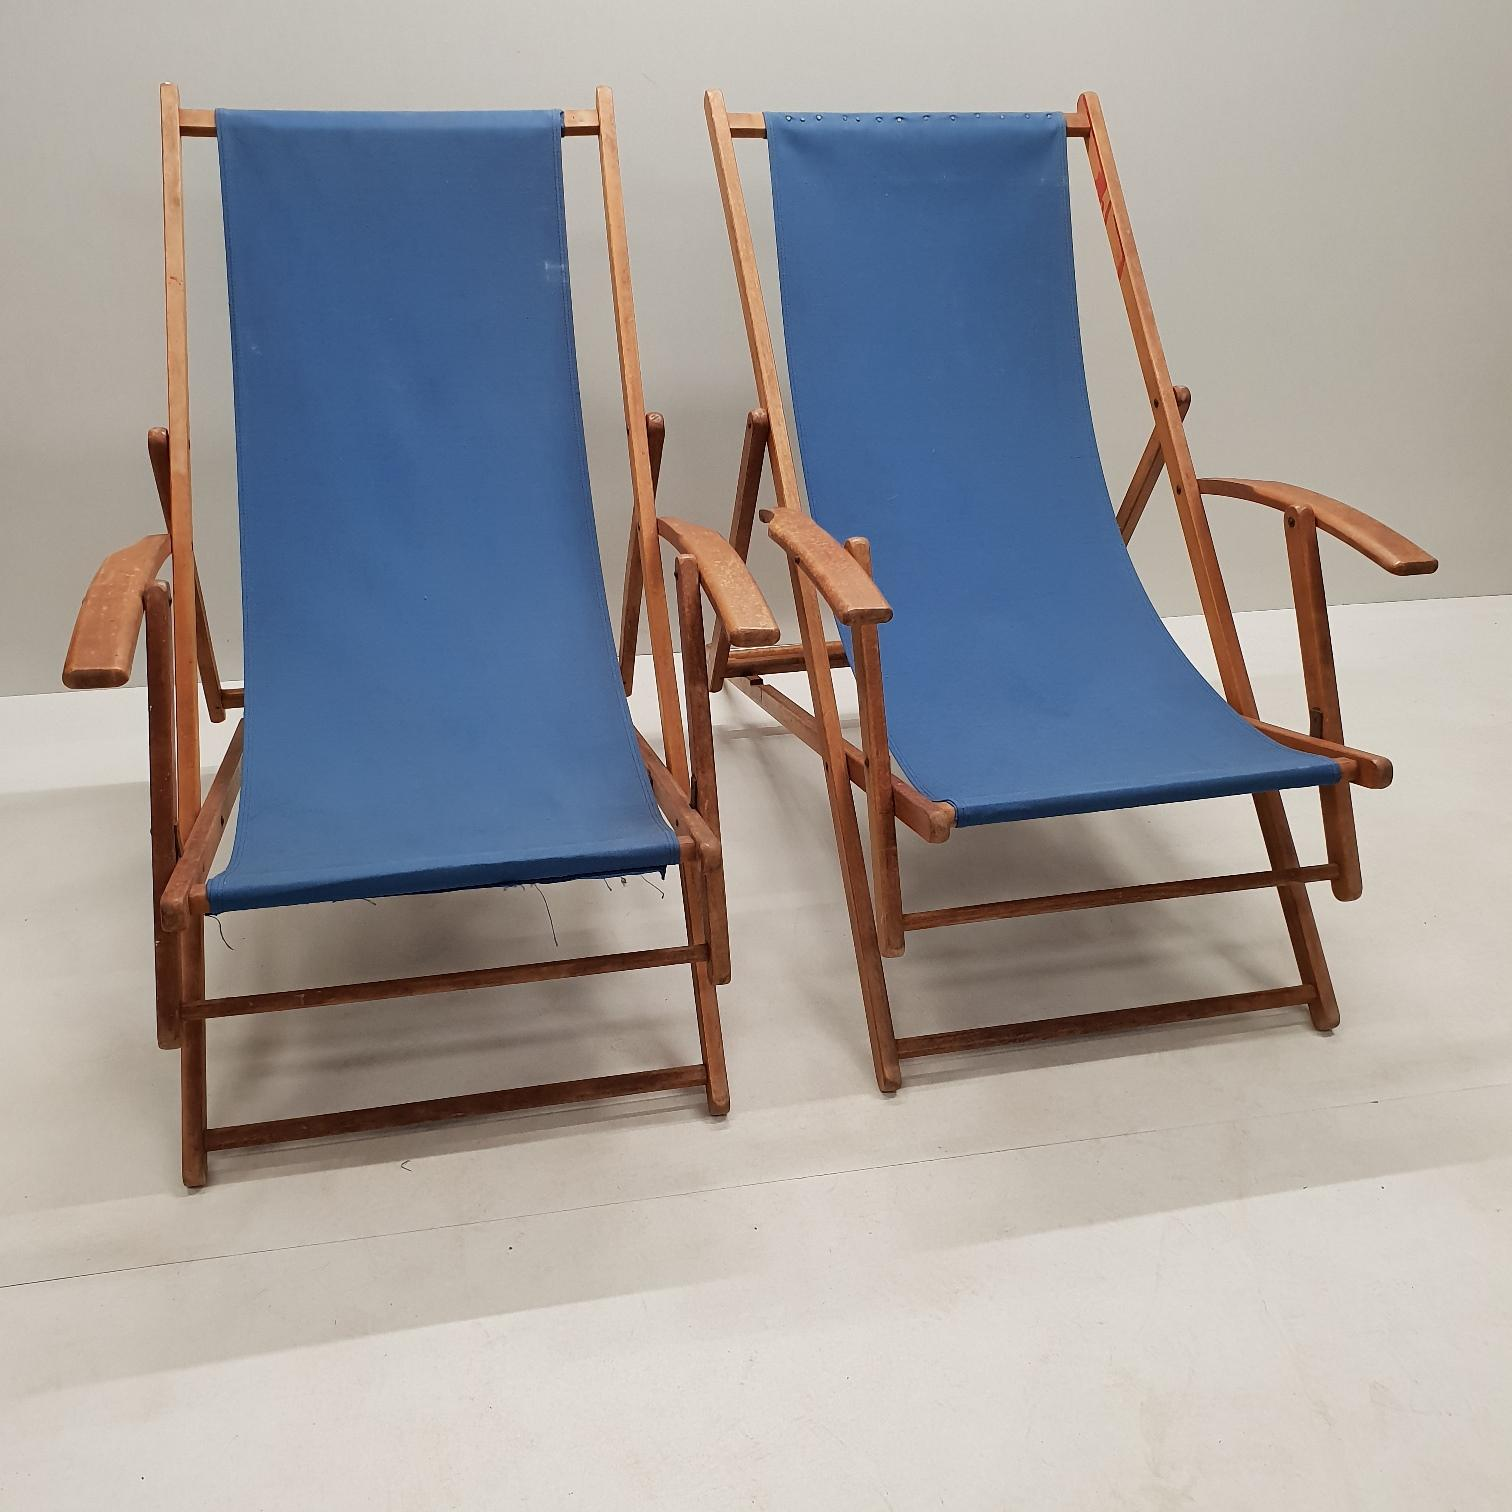 wooden frame beach chairs old ritter dental chair pair of vintage retro folding with armrests and adjustable 1950s the canvas upholstery is